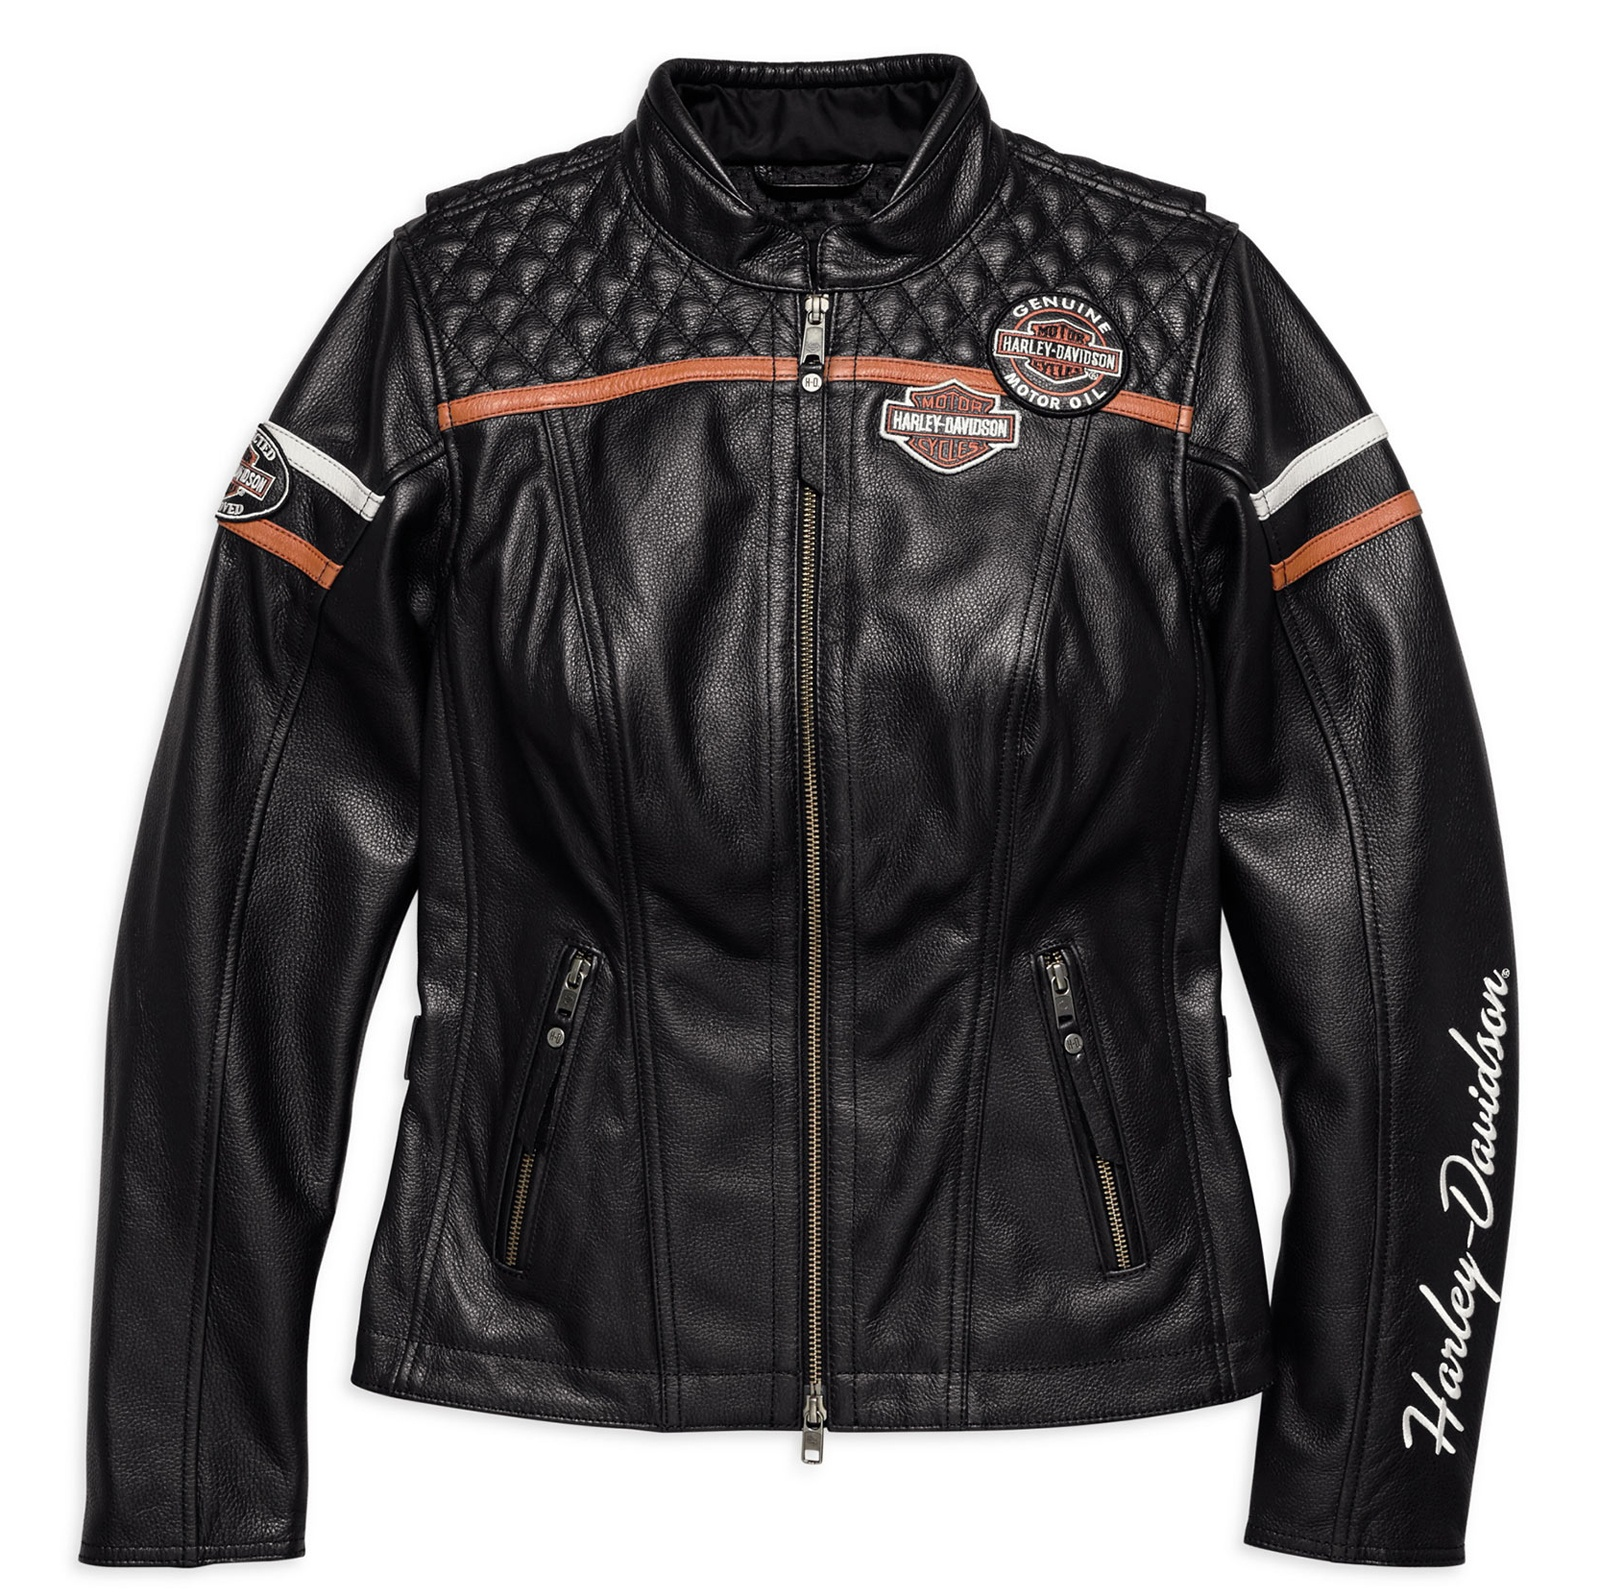 98030 18ew harley davidson leather jacket miss enthusiast ce at thunderbike shop. Black Bedroom Furniture Sets. Home Design Ideas